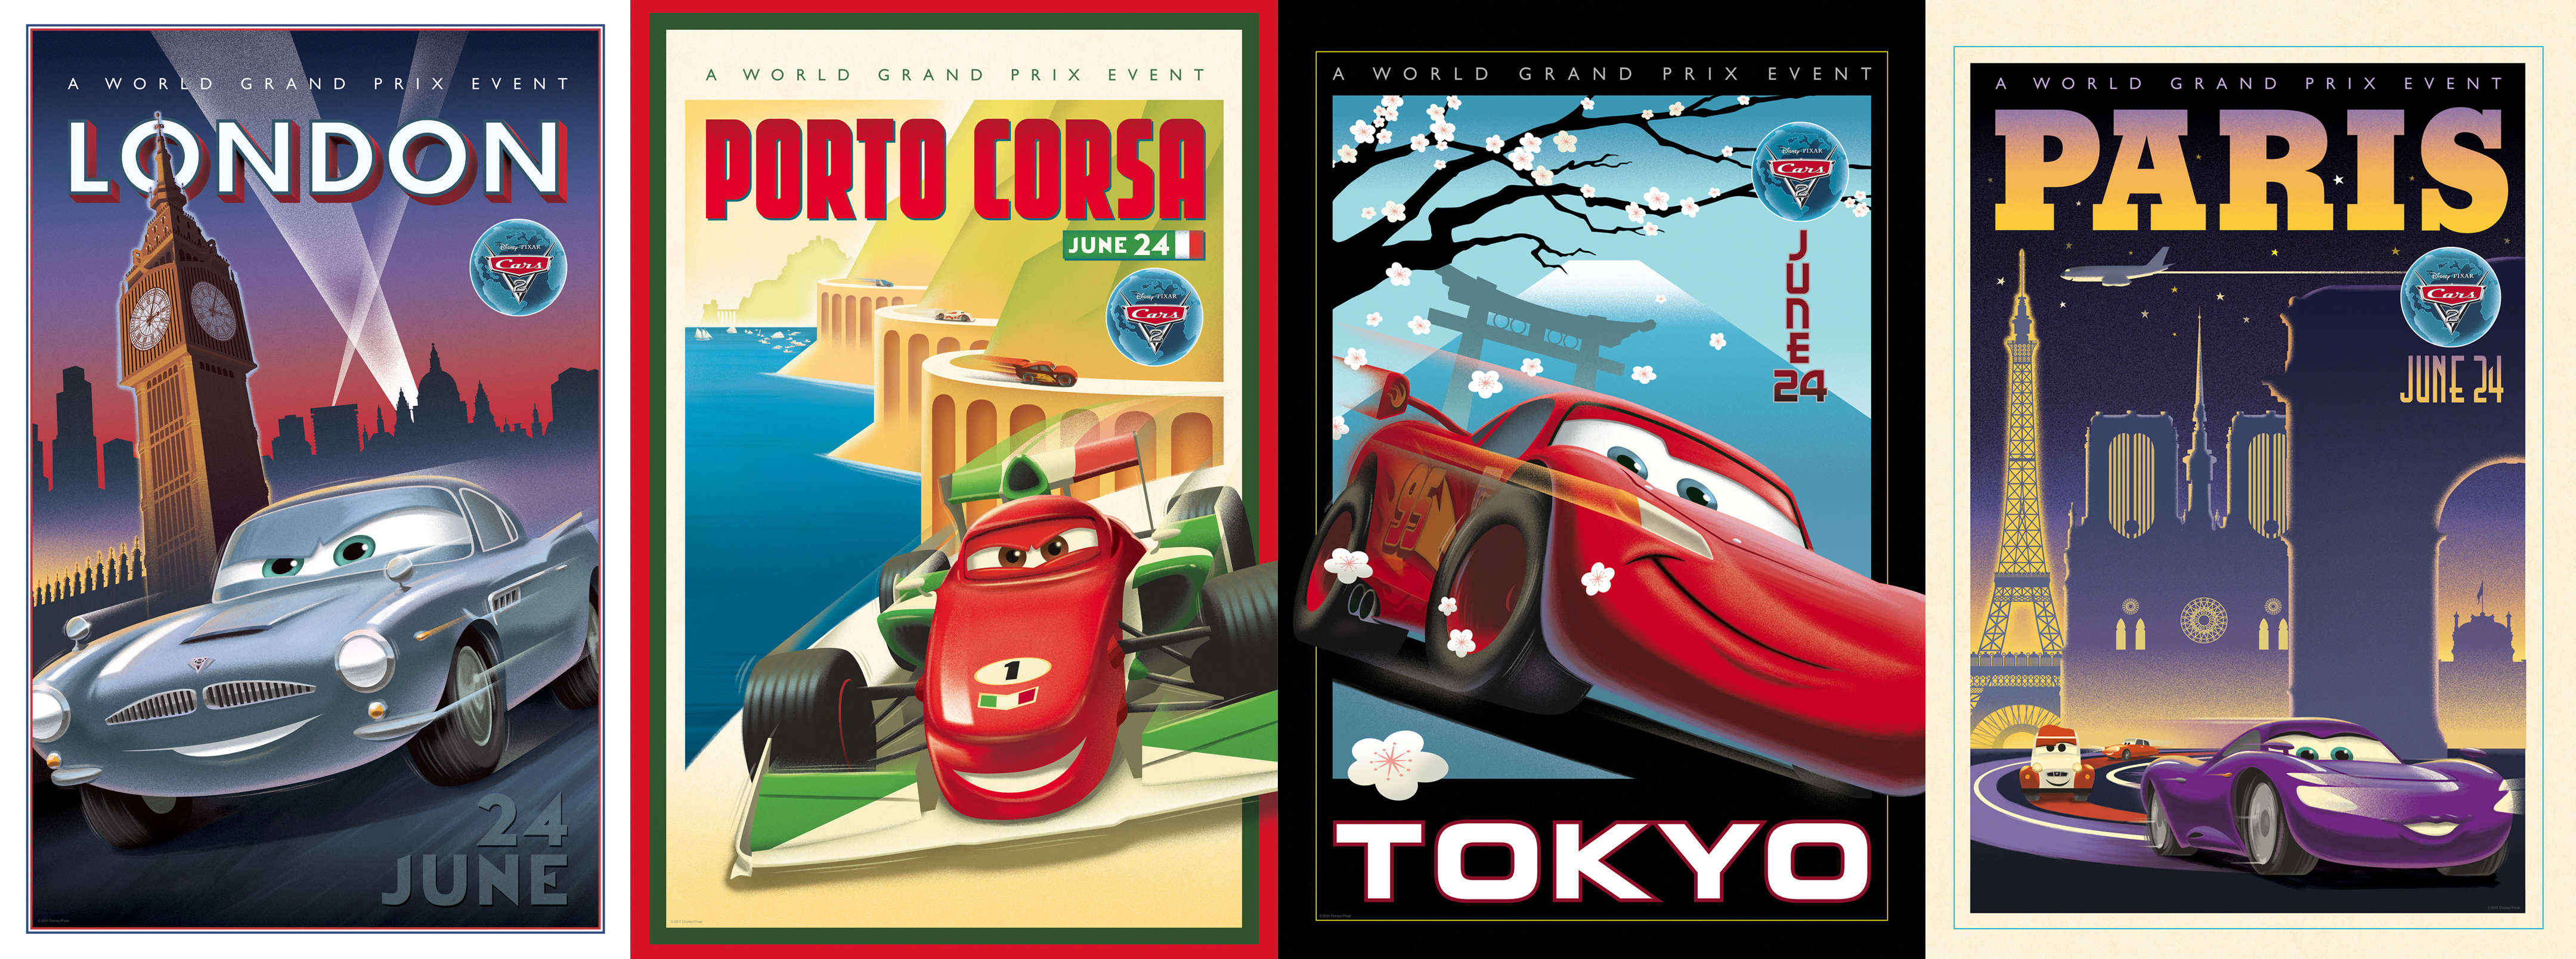 Cars silver racer poster 2 - This Should Be The Last Bit Of Cars 2